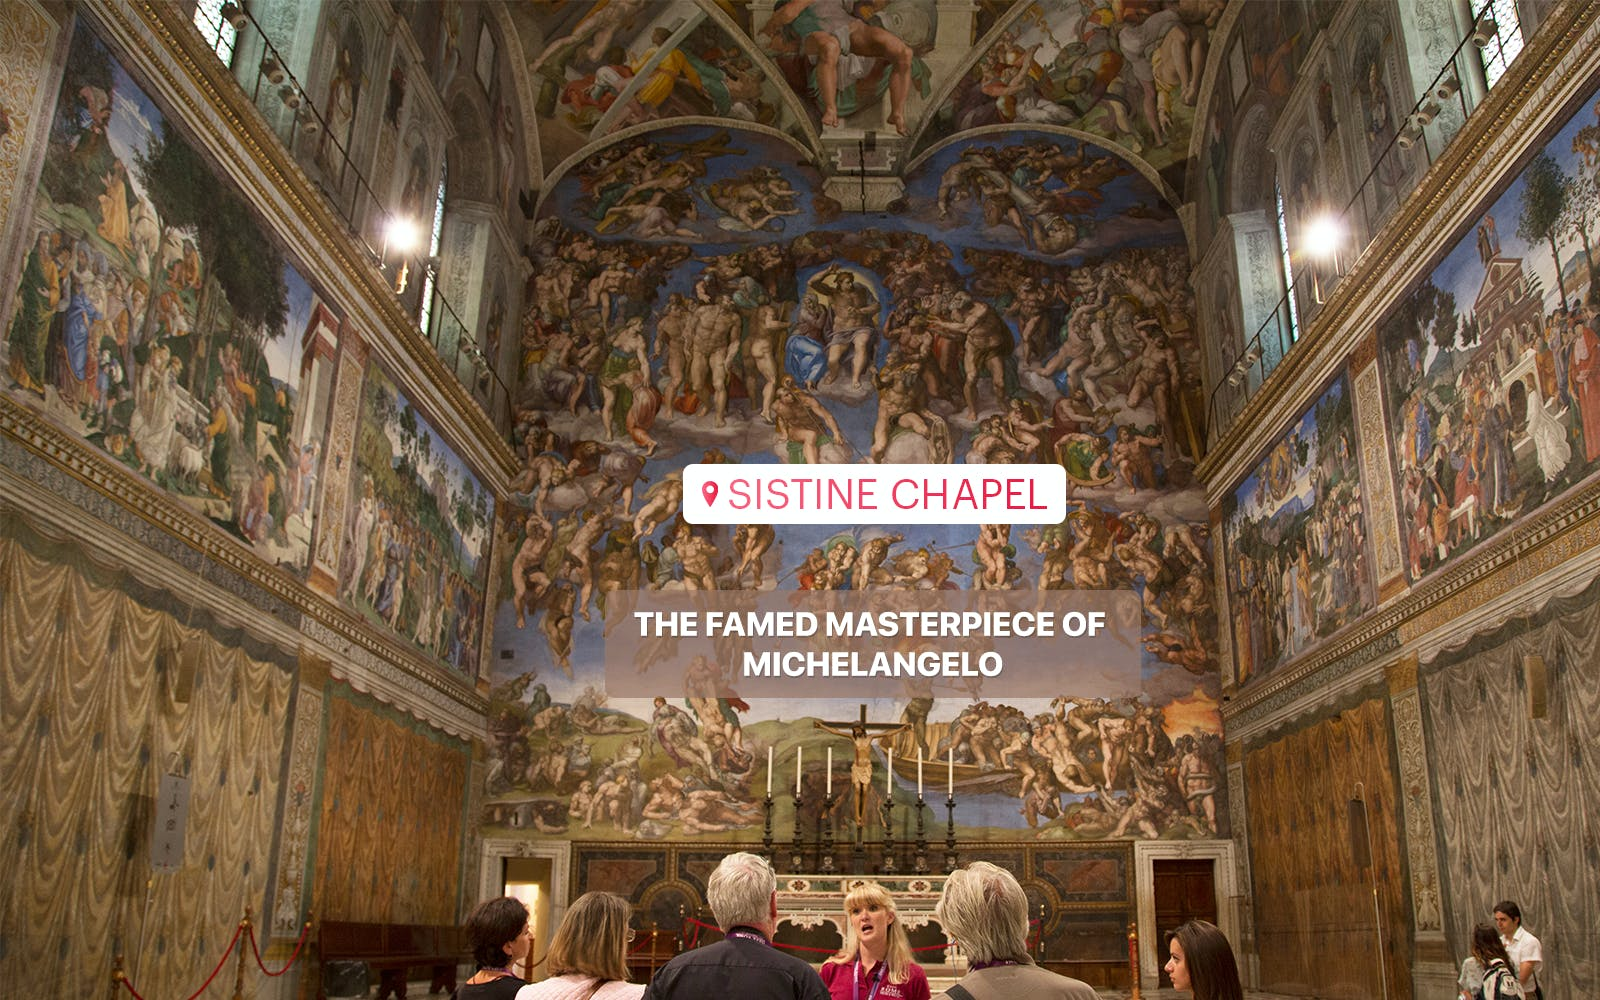 guided tour of the vatican museums, sistine chapel and st. peter's basilica-12